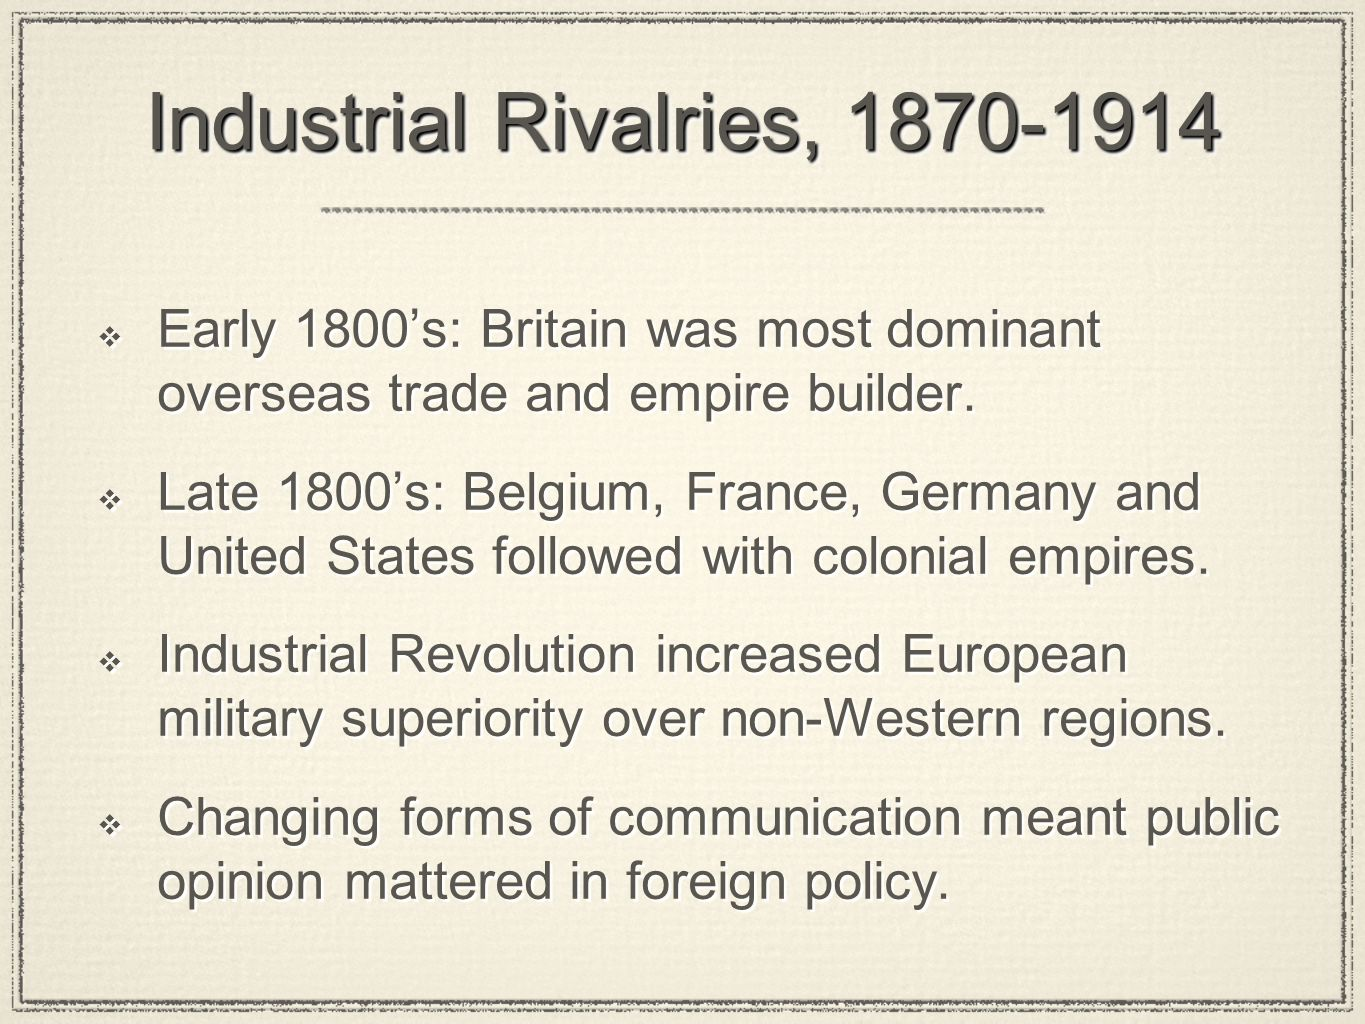 Industrial Rivalries, 1870-1914 Early 1800s: Britain was most dominant overseas trade and empire builder. Late 1800s: Belgium, France, Germany and Uni